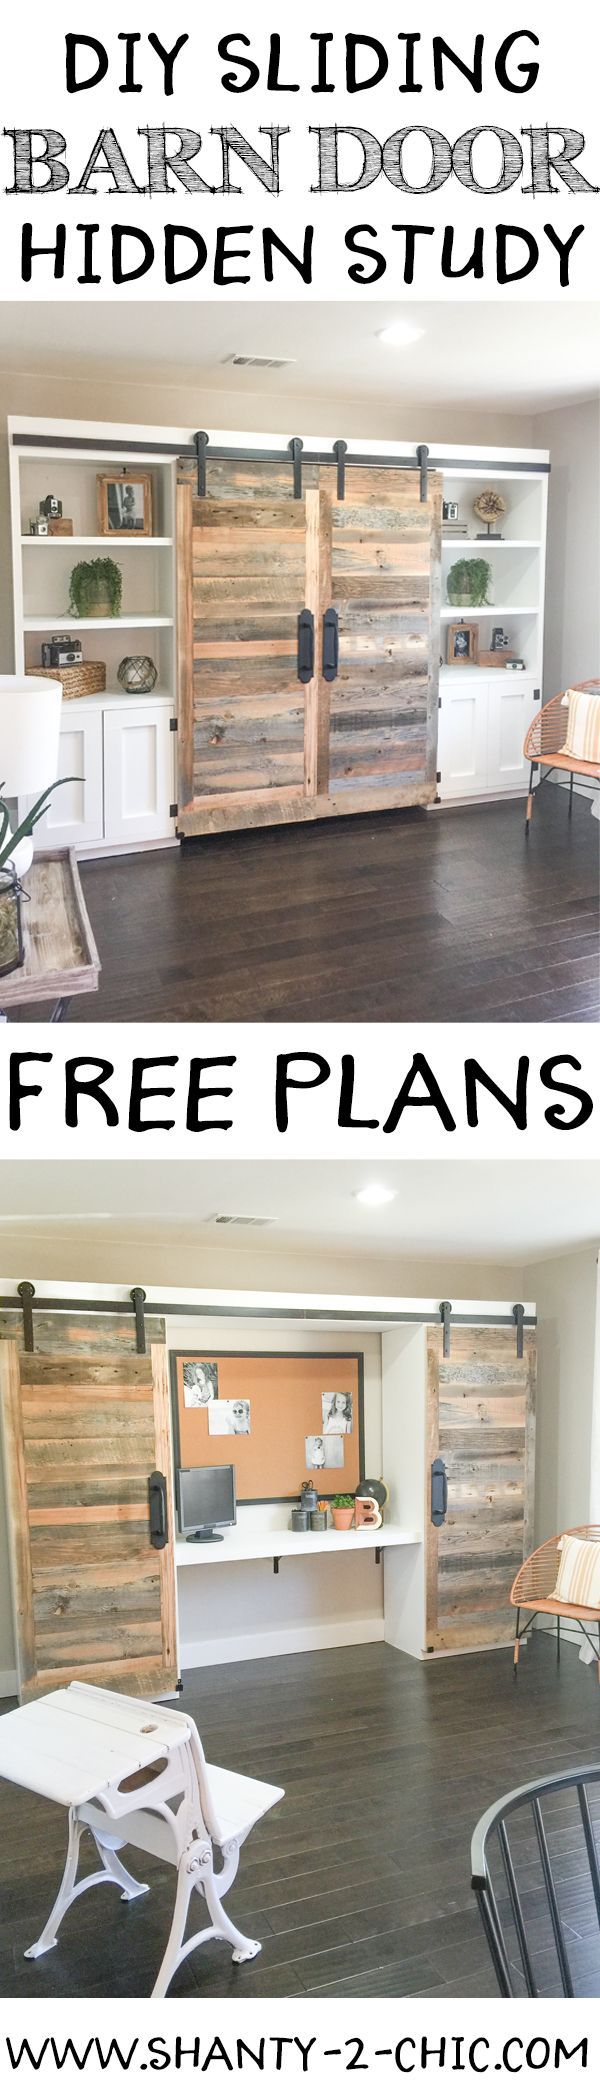 This sliding barn door hidden study is perfect for creating an office space when...